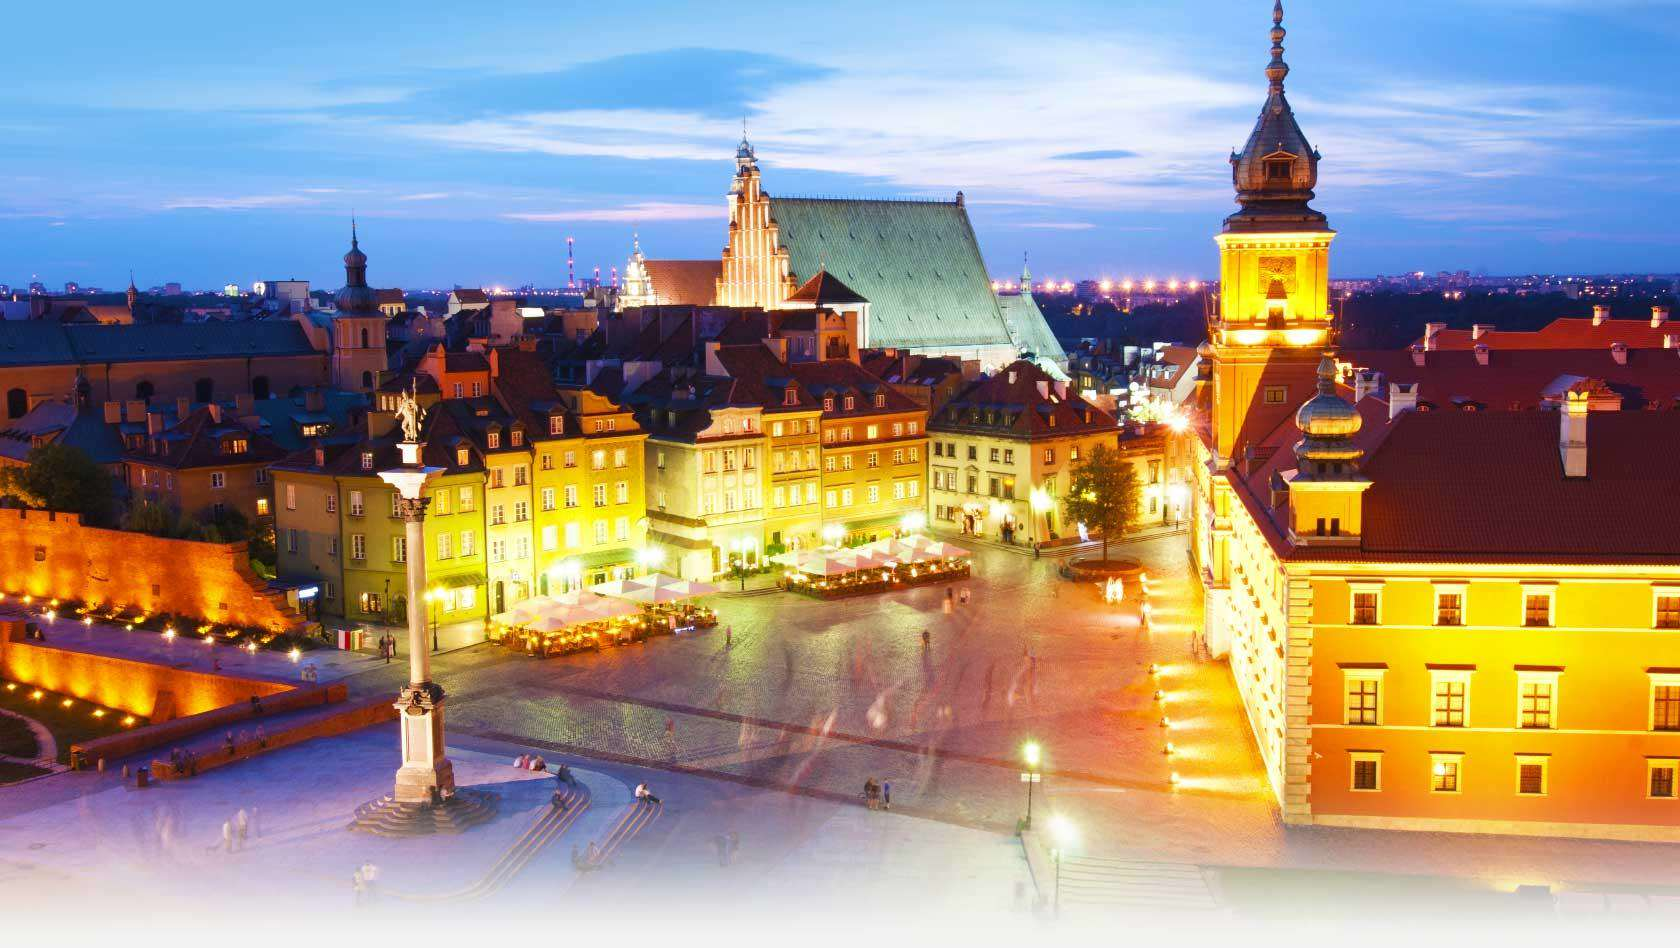 warsaw These Are The Cheapest European Cities To Visit This Easter